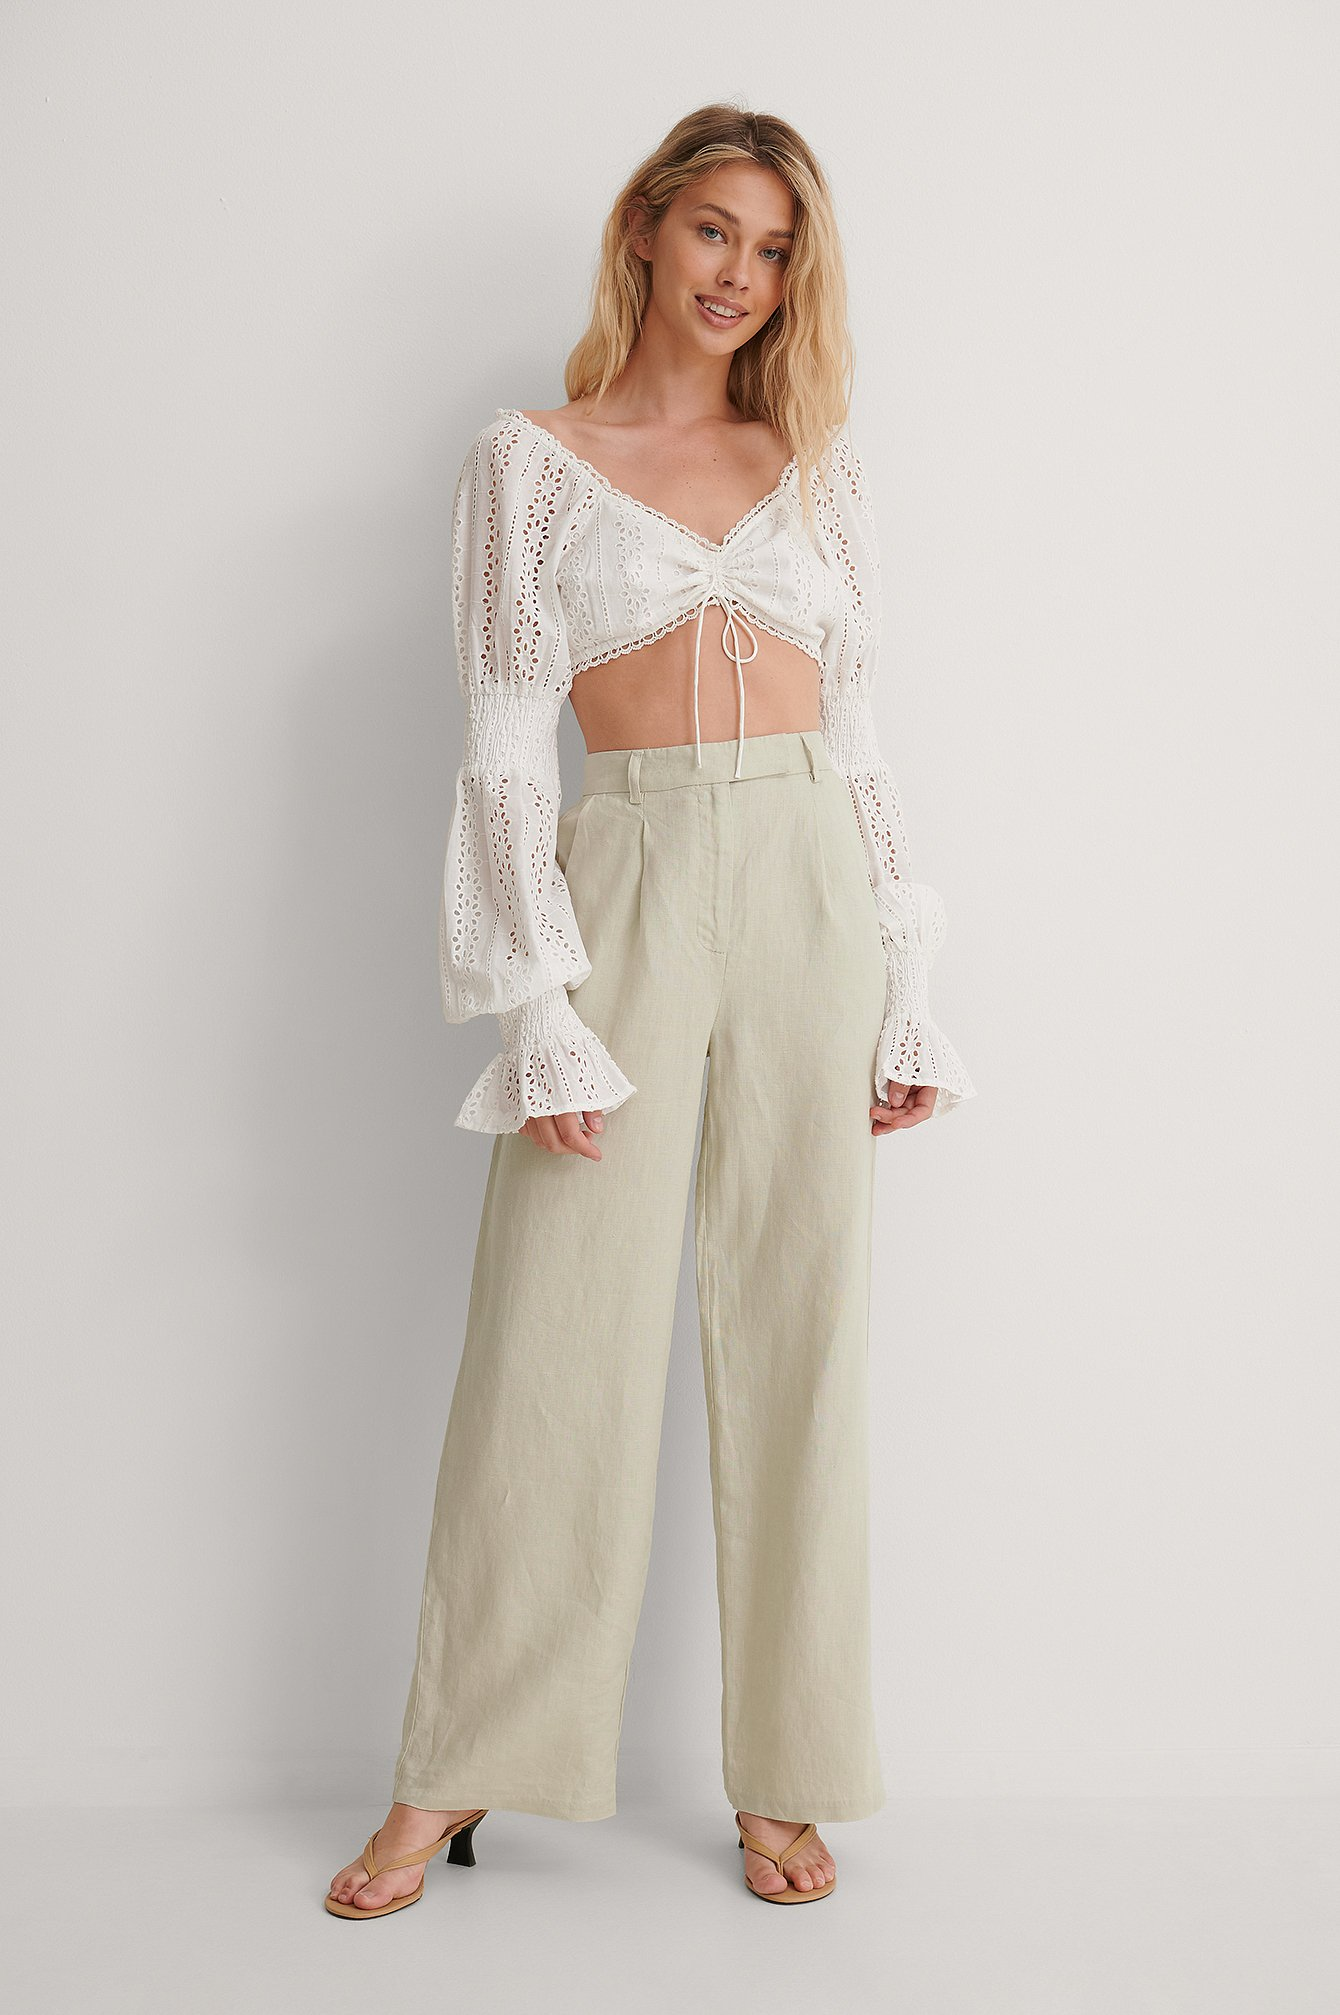 Cropped Anglaise Blouse Outfit.